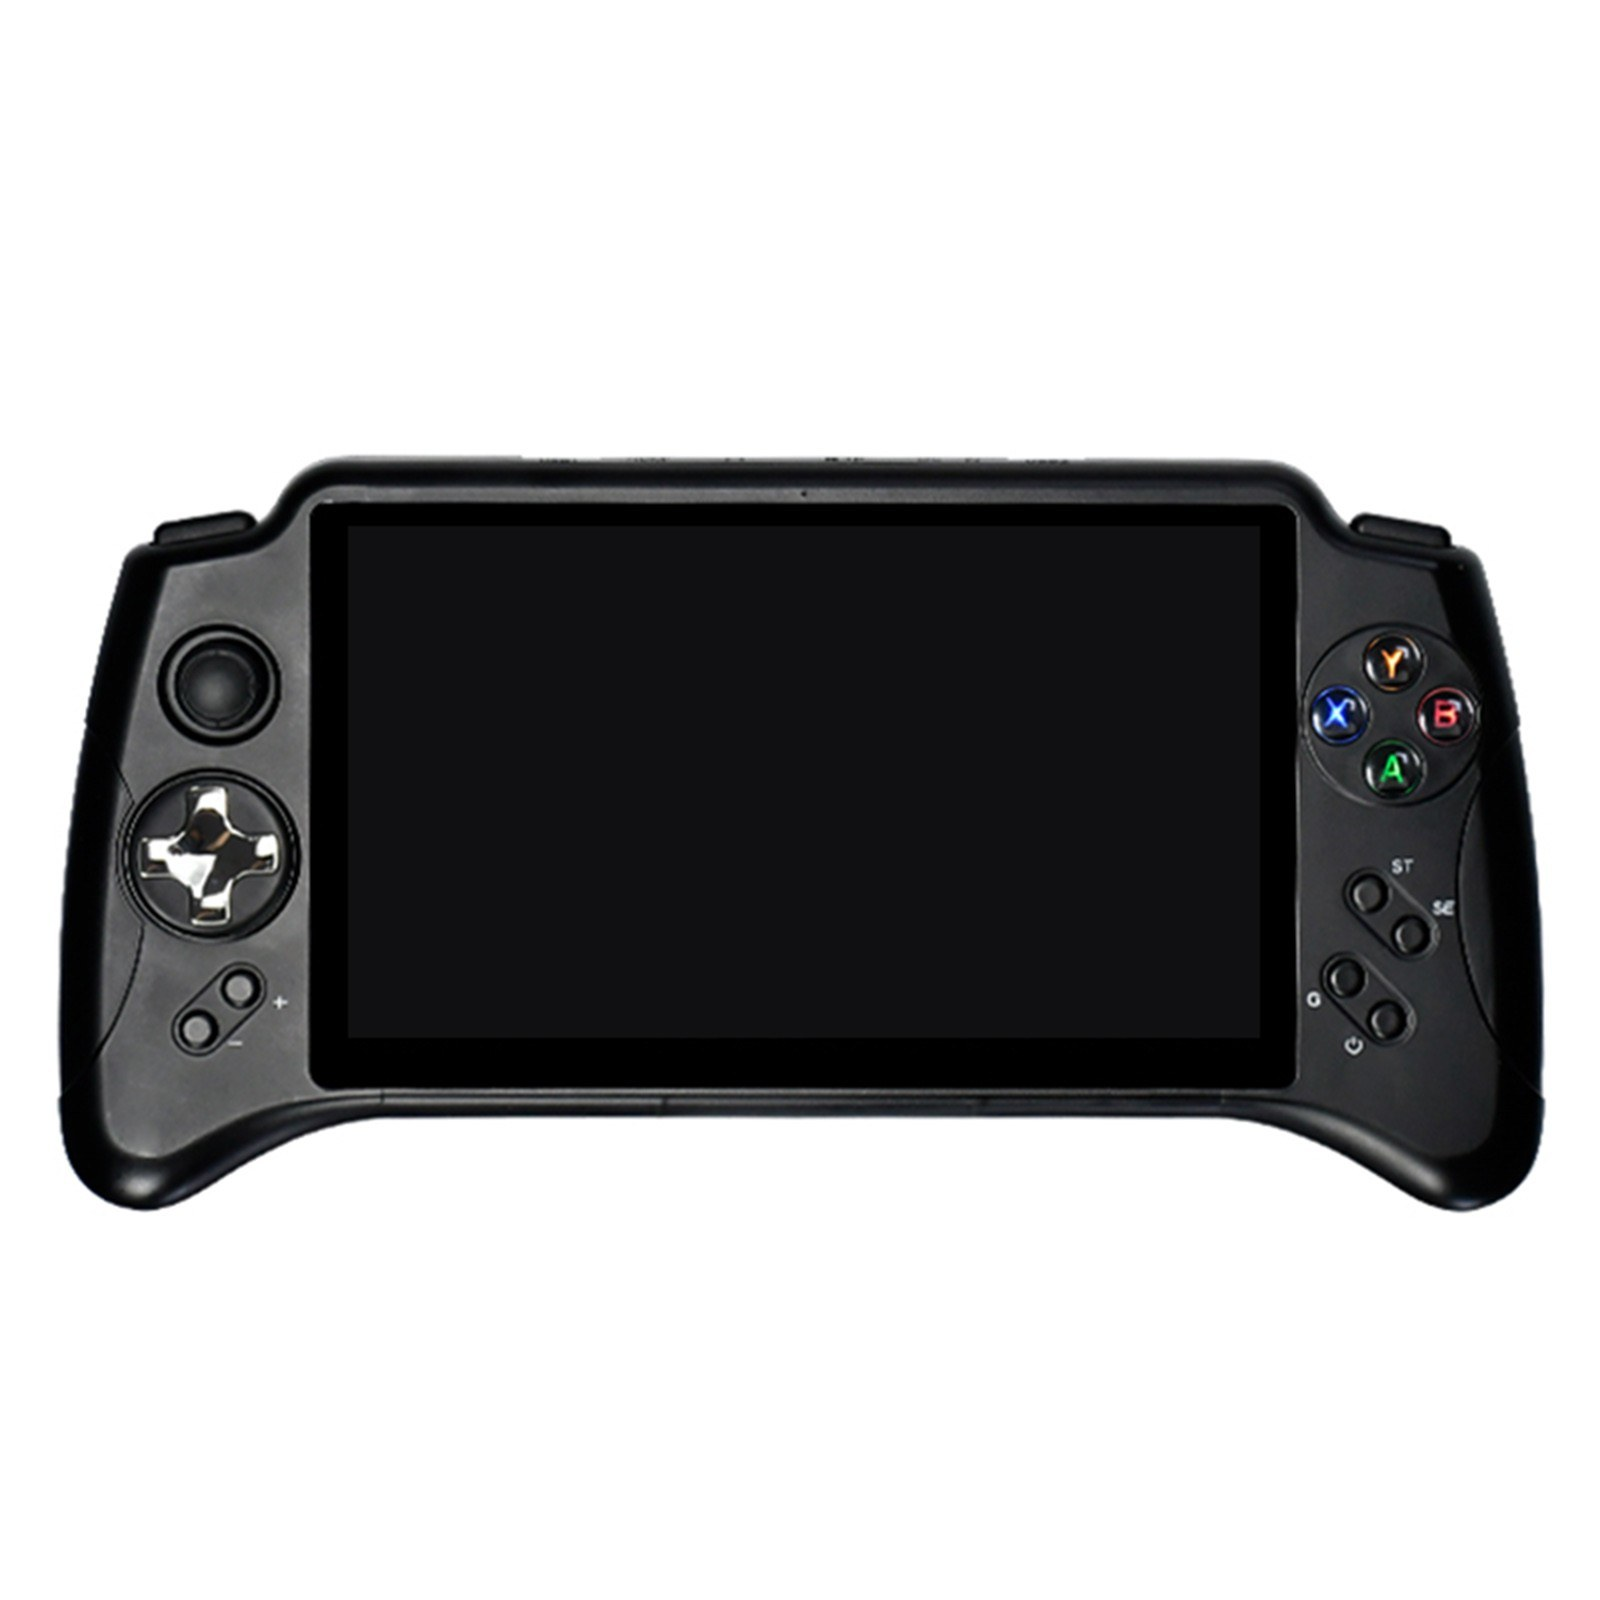 Tomtop - 45% OFF Powkiddy X17 Android 7.0 Portable WiFi Game Console, $152.99 (Inclusive of VAT)